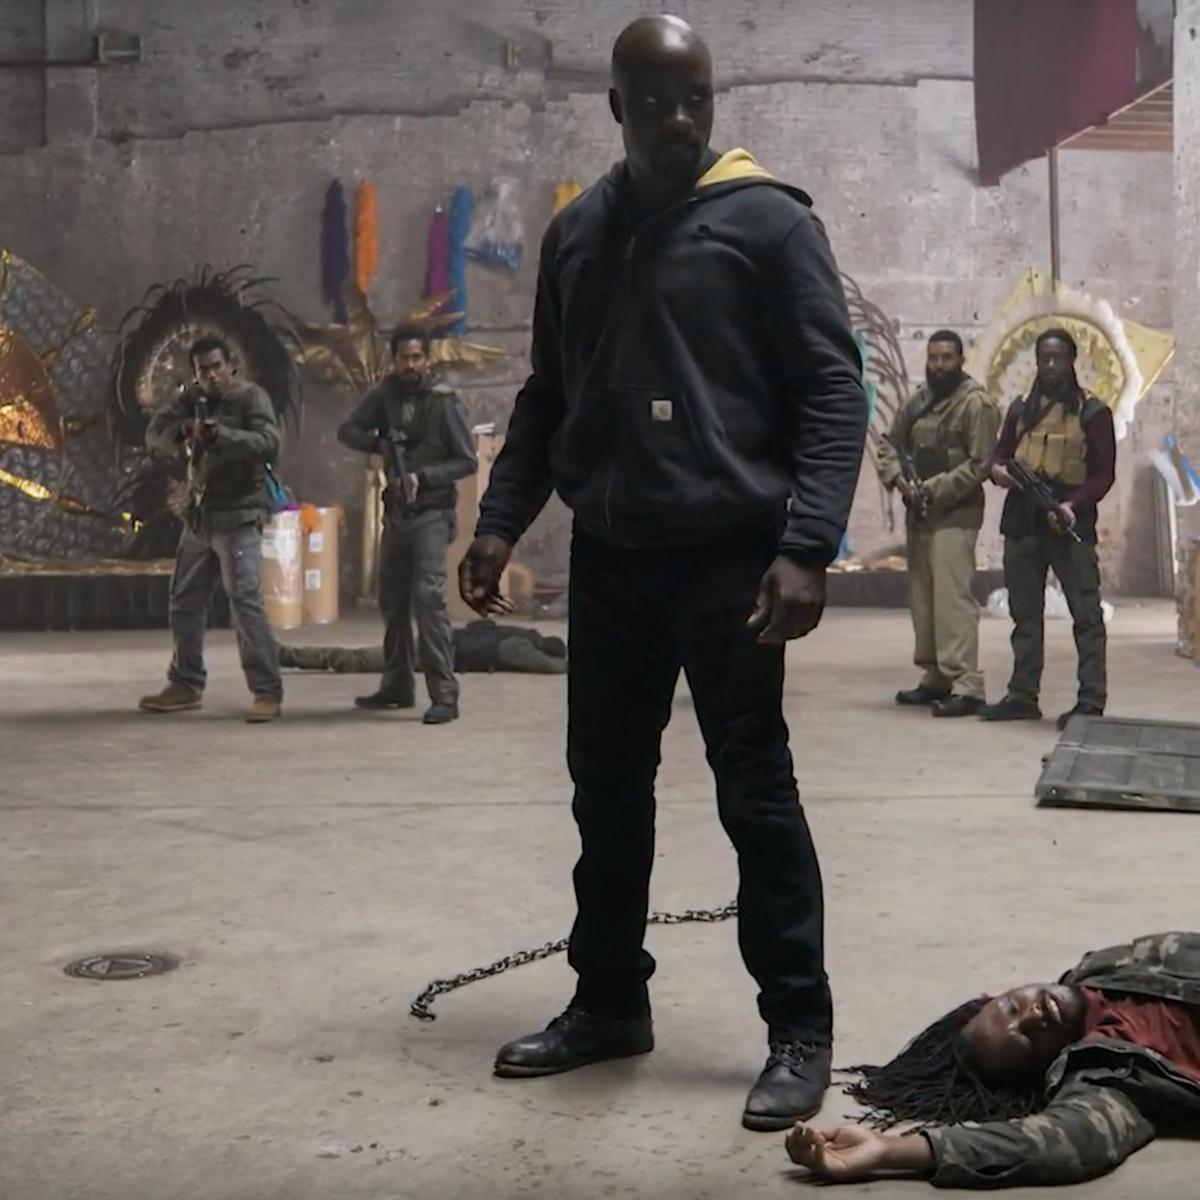 'Luke Cage' Cancelled: No Season 3 for Netflix Marvel Series